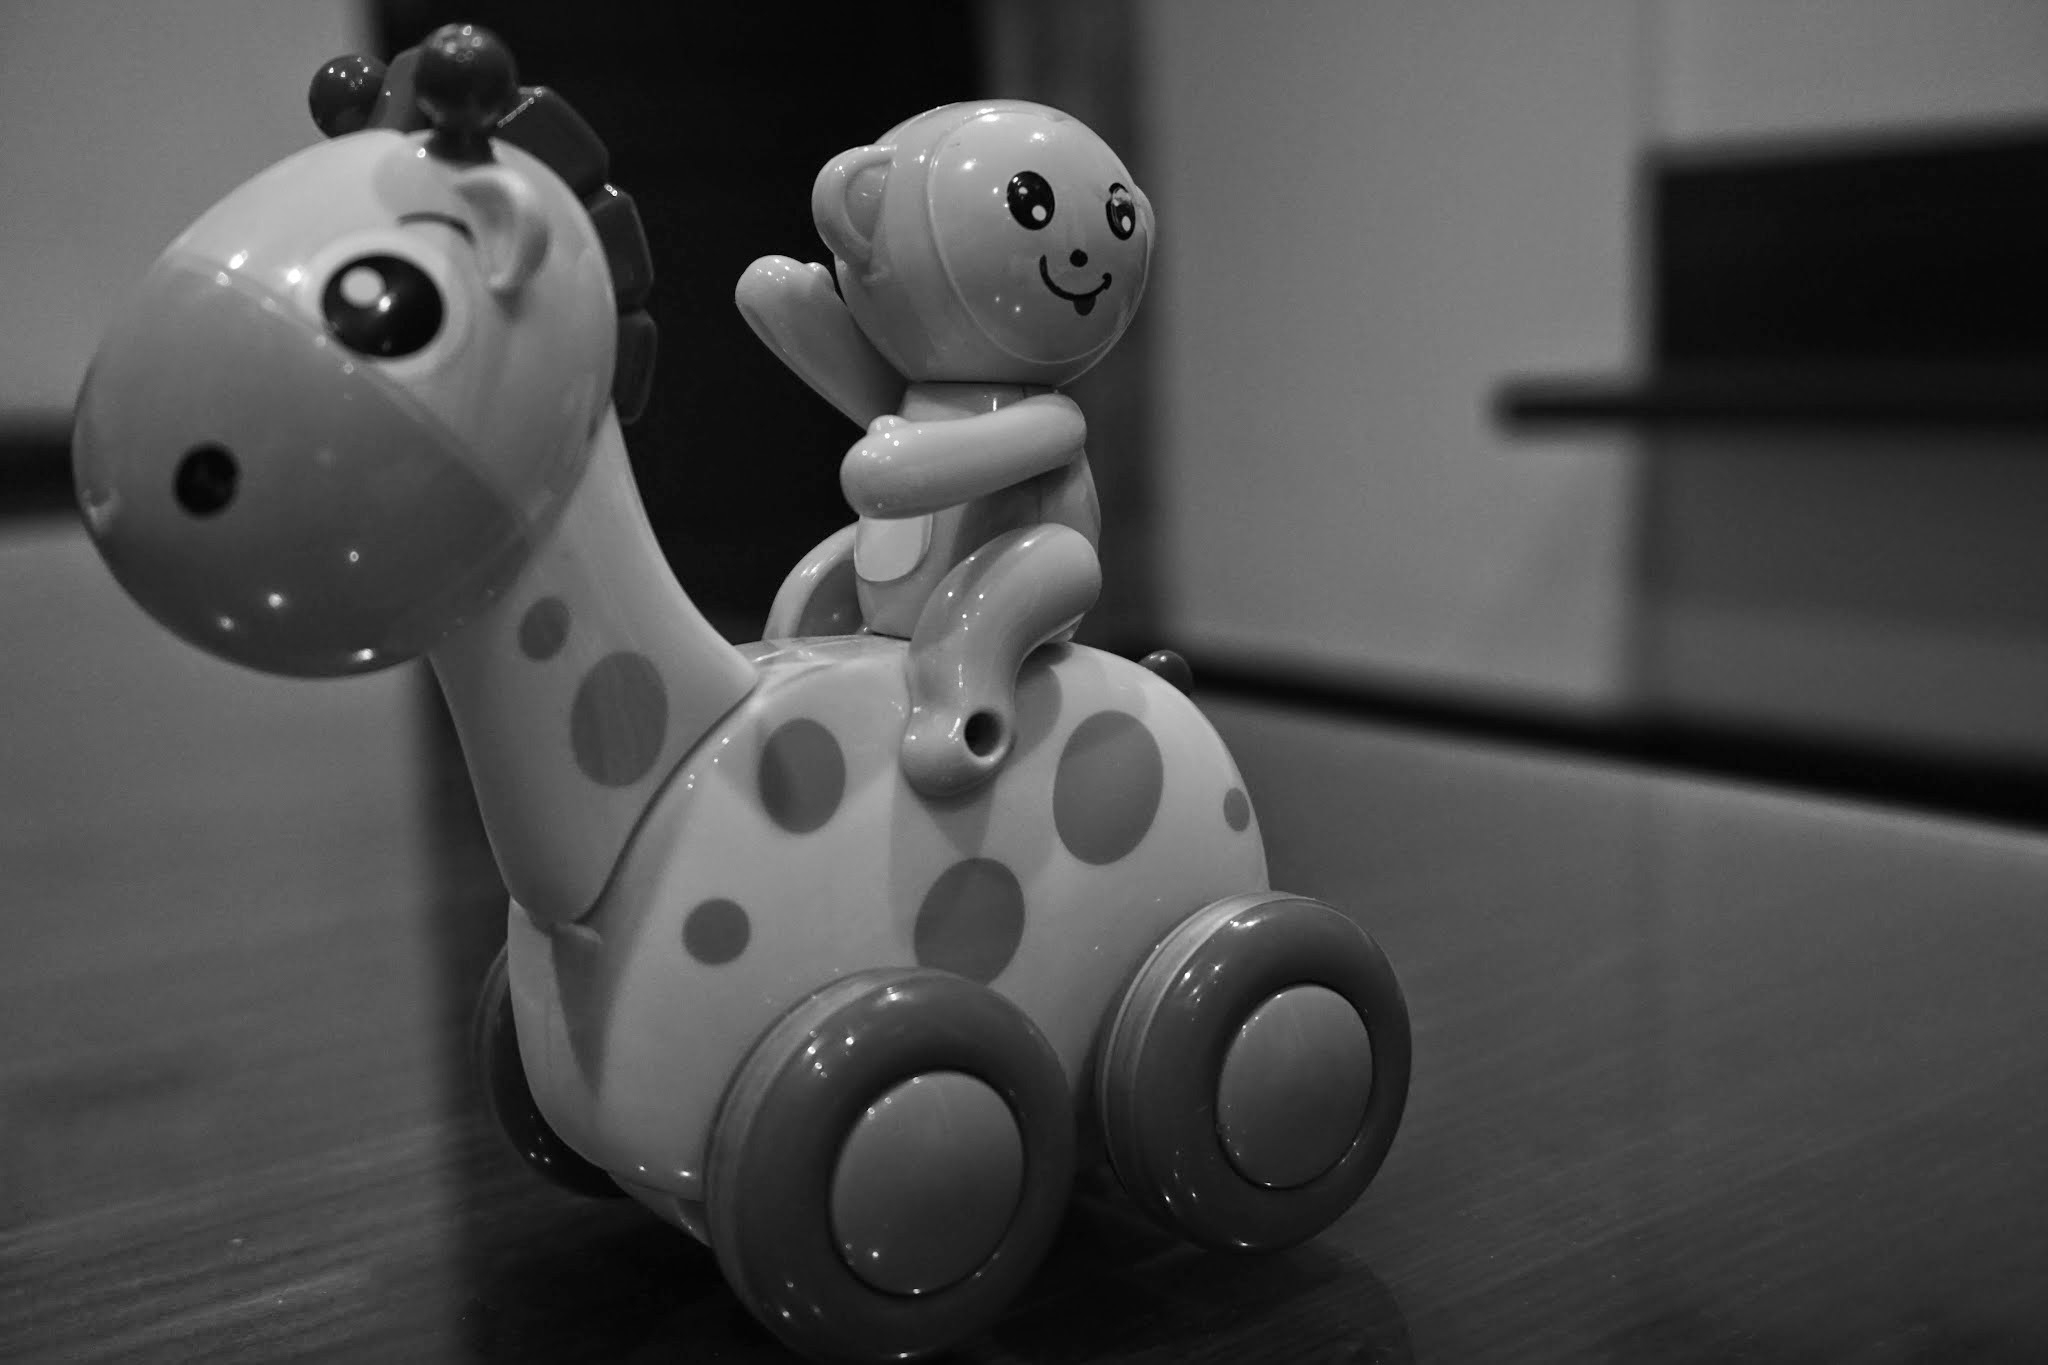 Canva - Grayscale Photo of Giraffe and Monkey Plastic Toy on Floor